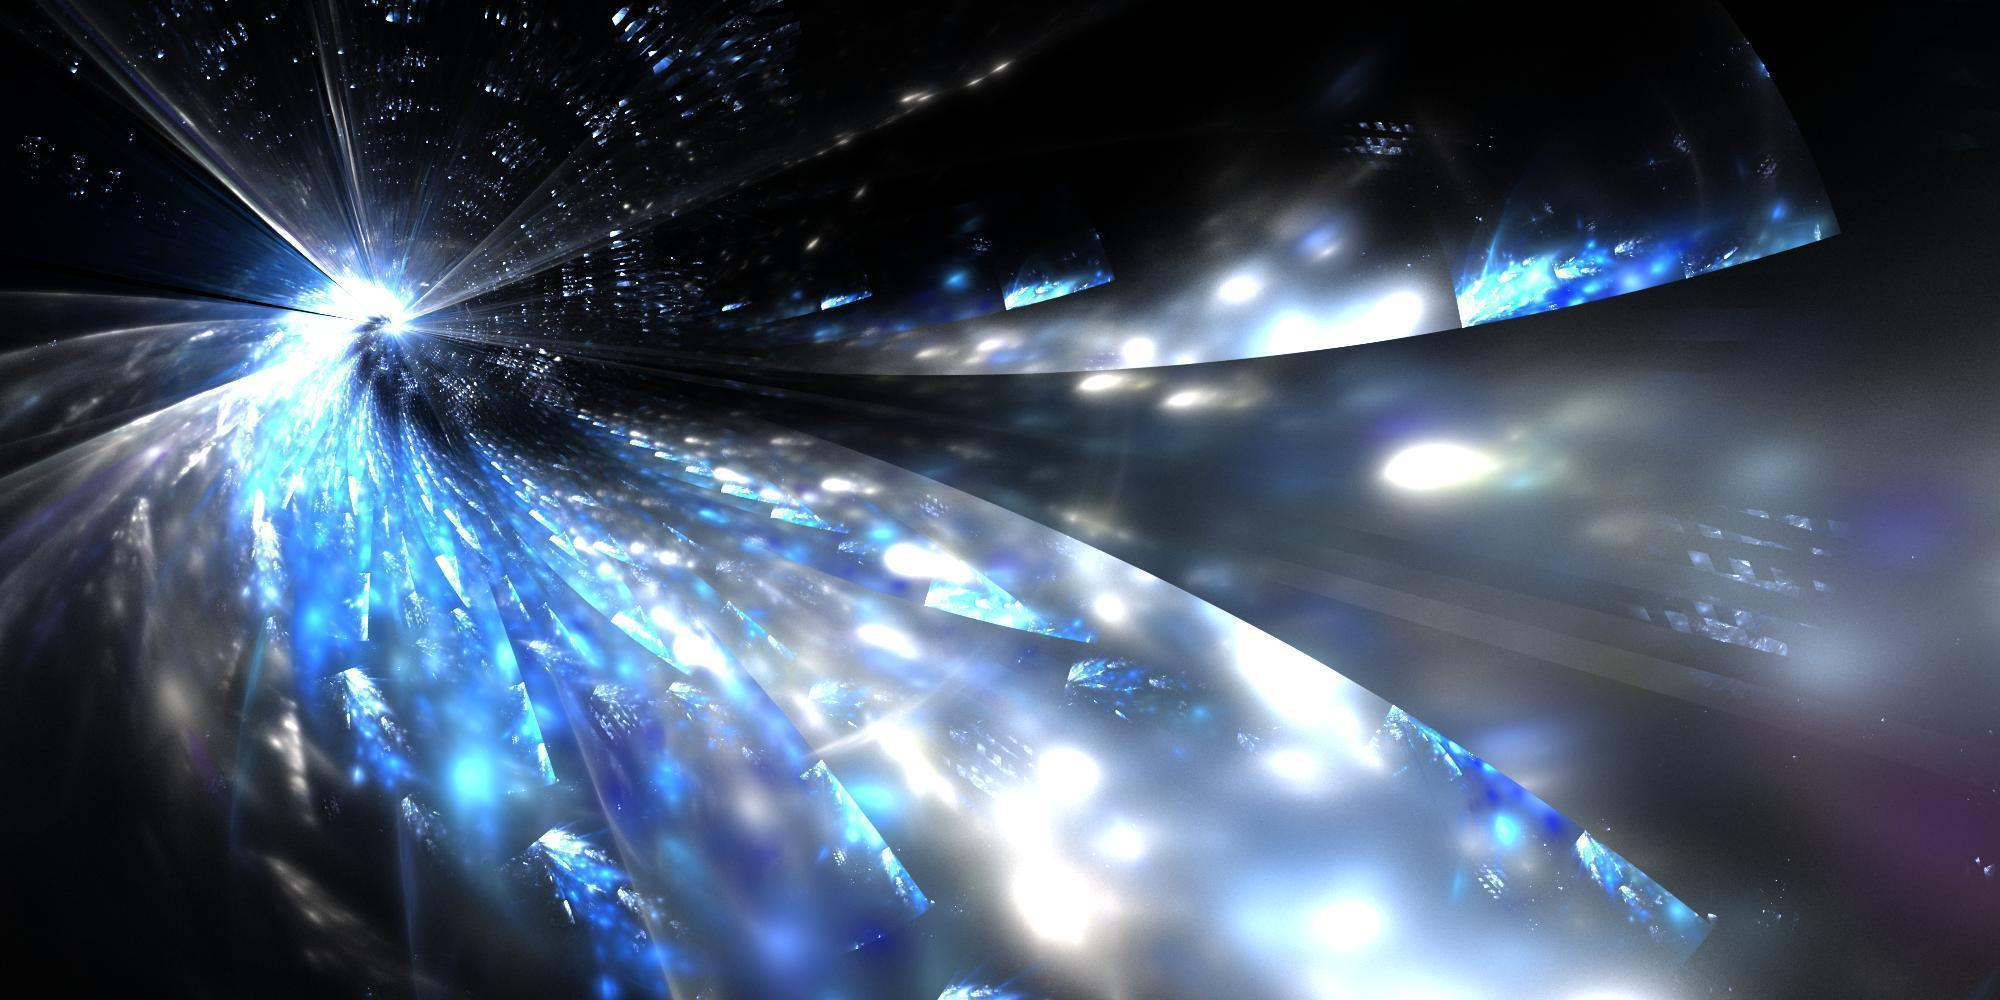 wormhole wallpaper space - photo #7